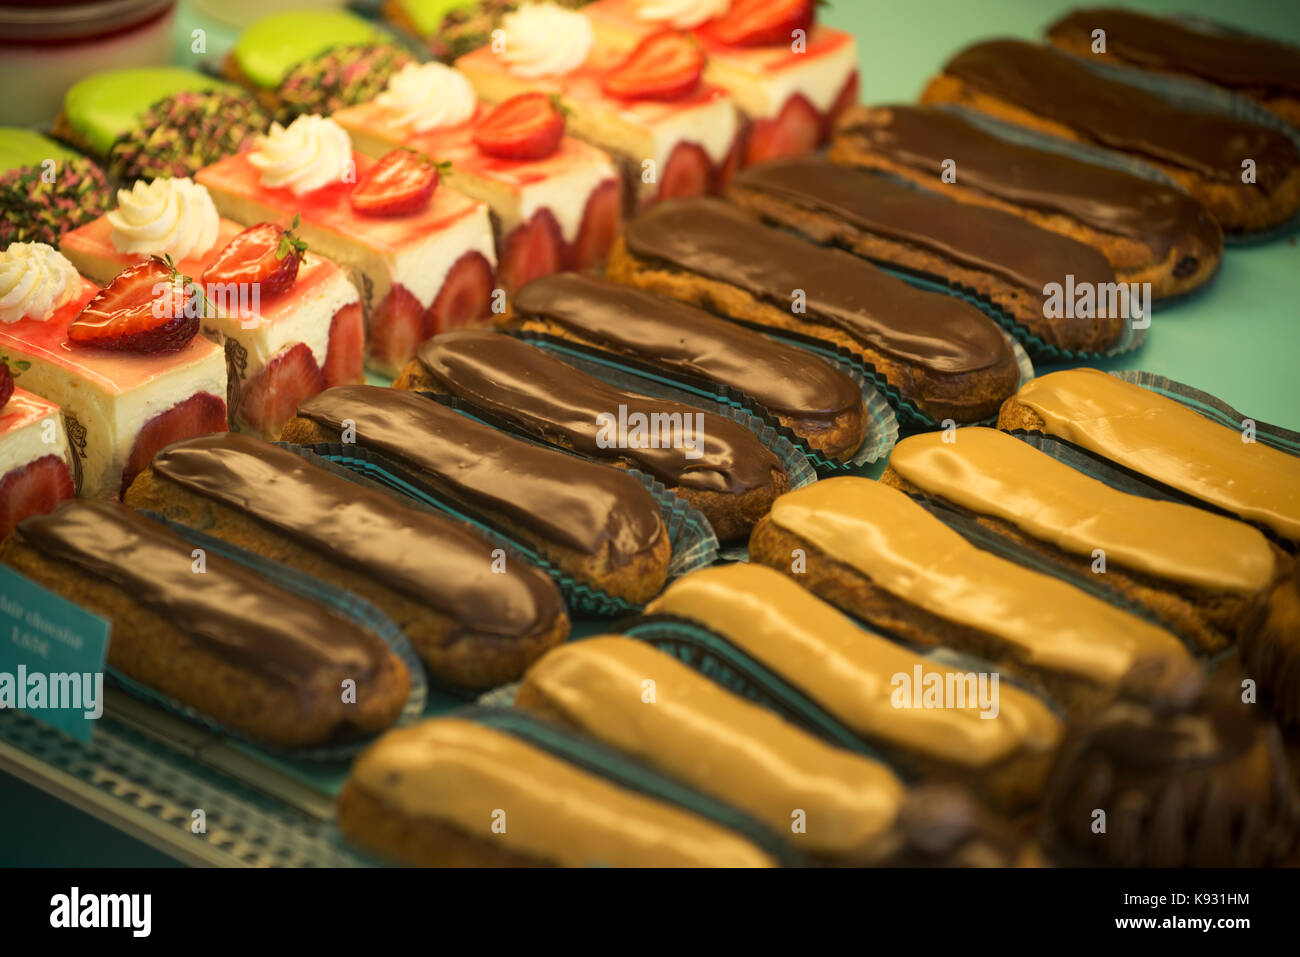 Eclair cakes in a patisserie in Falaise,Calvados, Normandy, France. Aug 2017 - Stock Image